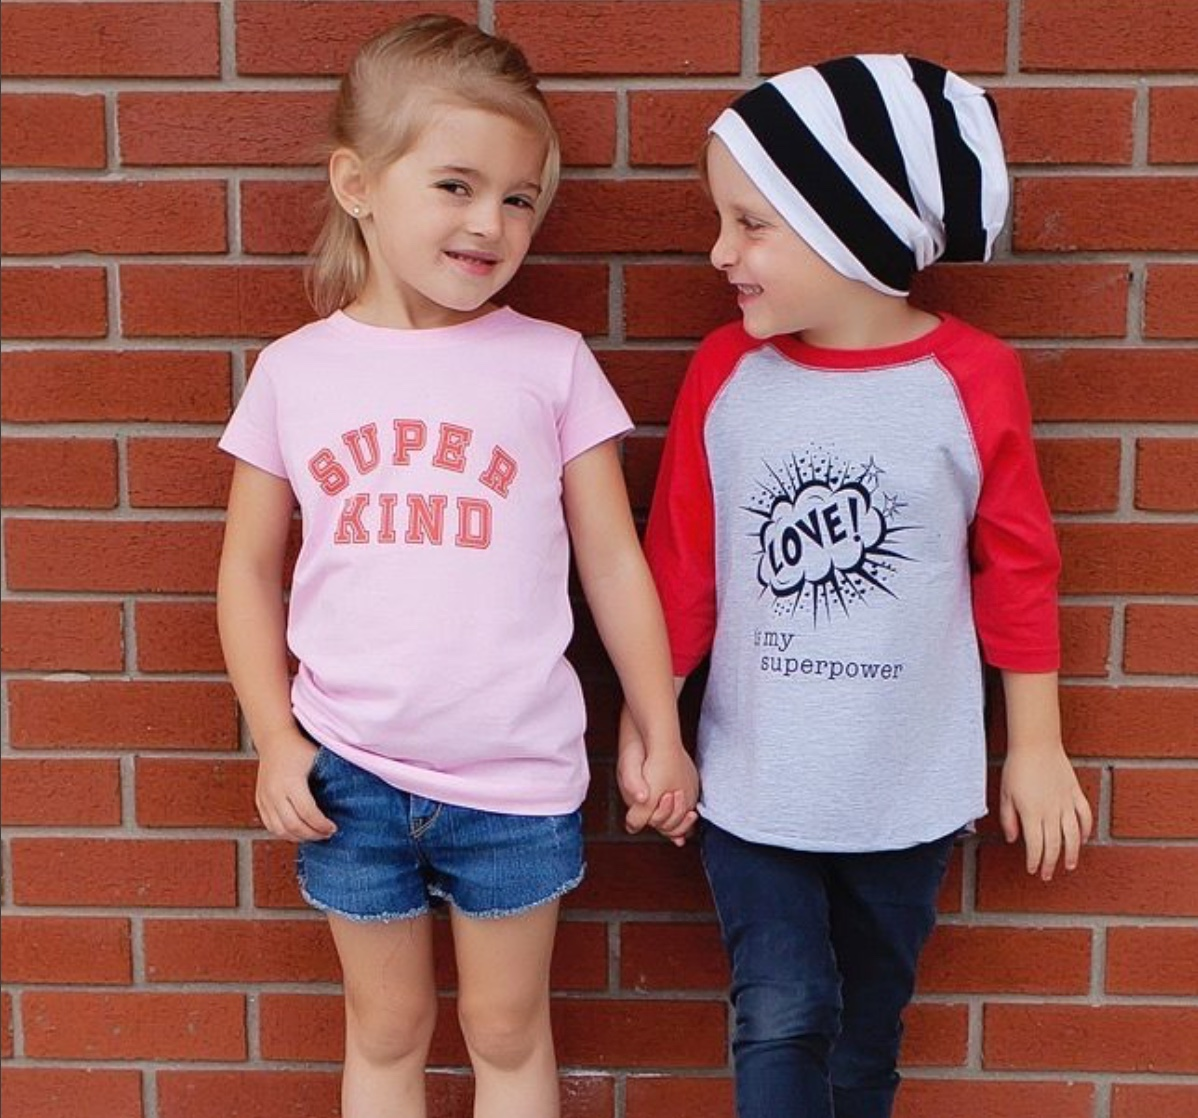 Empowering T-Shirts for Boys and GIrls